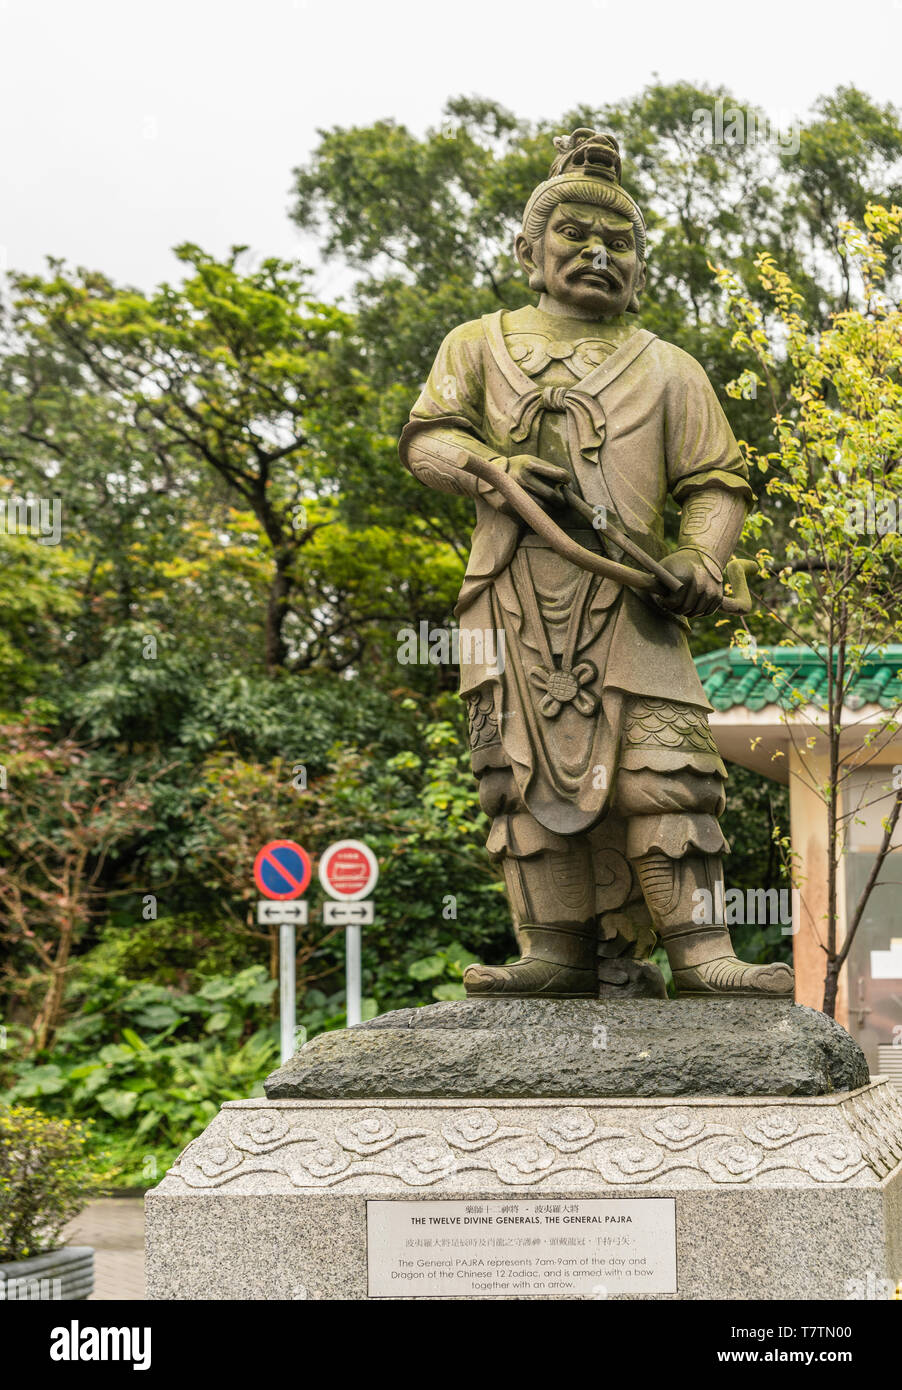 Hong Kong, China - March 7, 2019: Lantau Island. Po Lin Buddhist Monastery. Stone statue of General Pajra, one of the twelve Divine Generals. Green fo - Stock Image